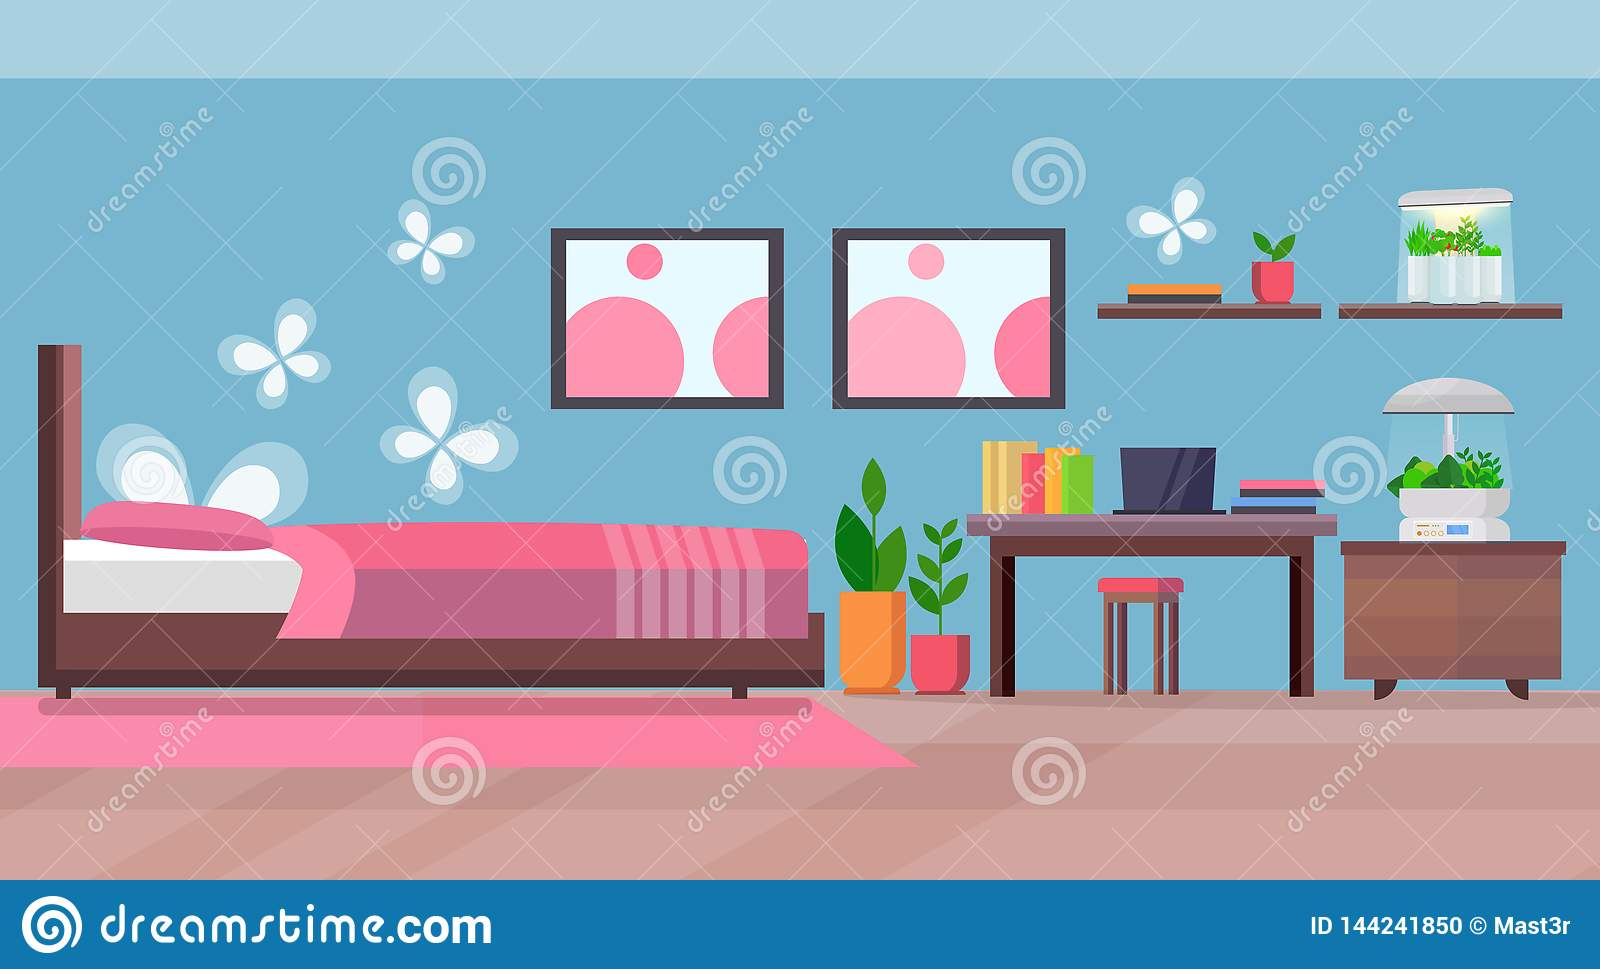 Terrarium Home Stock Illustrations 840 Terrarium Home Stock Illustrations Vectors Clipart Dreamstime